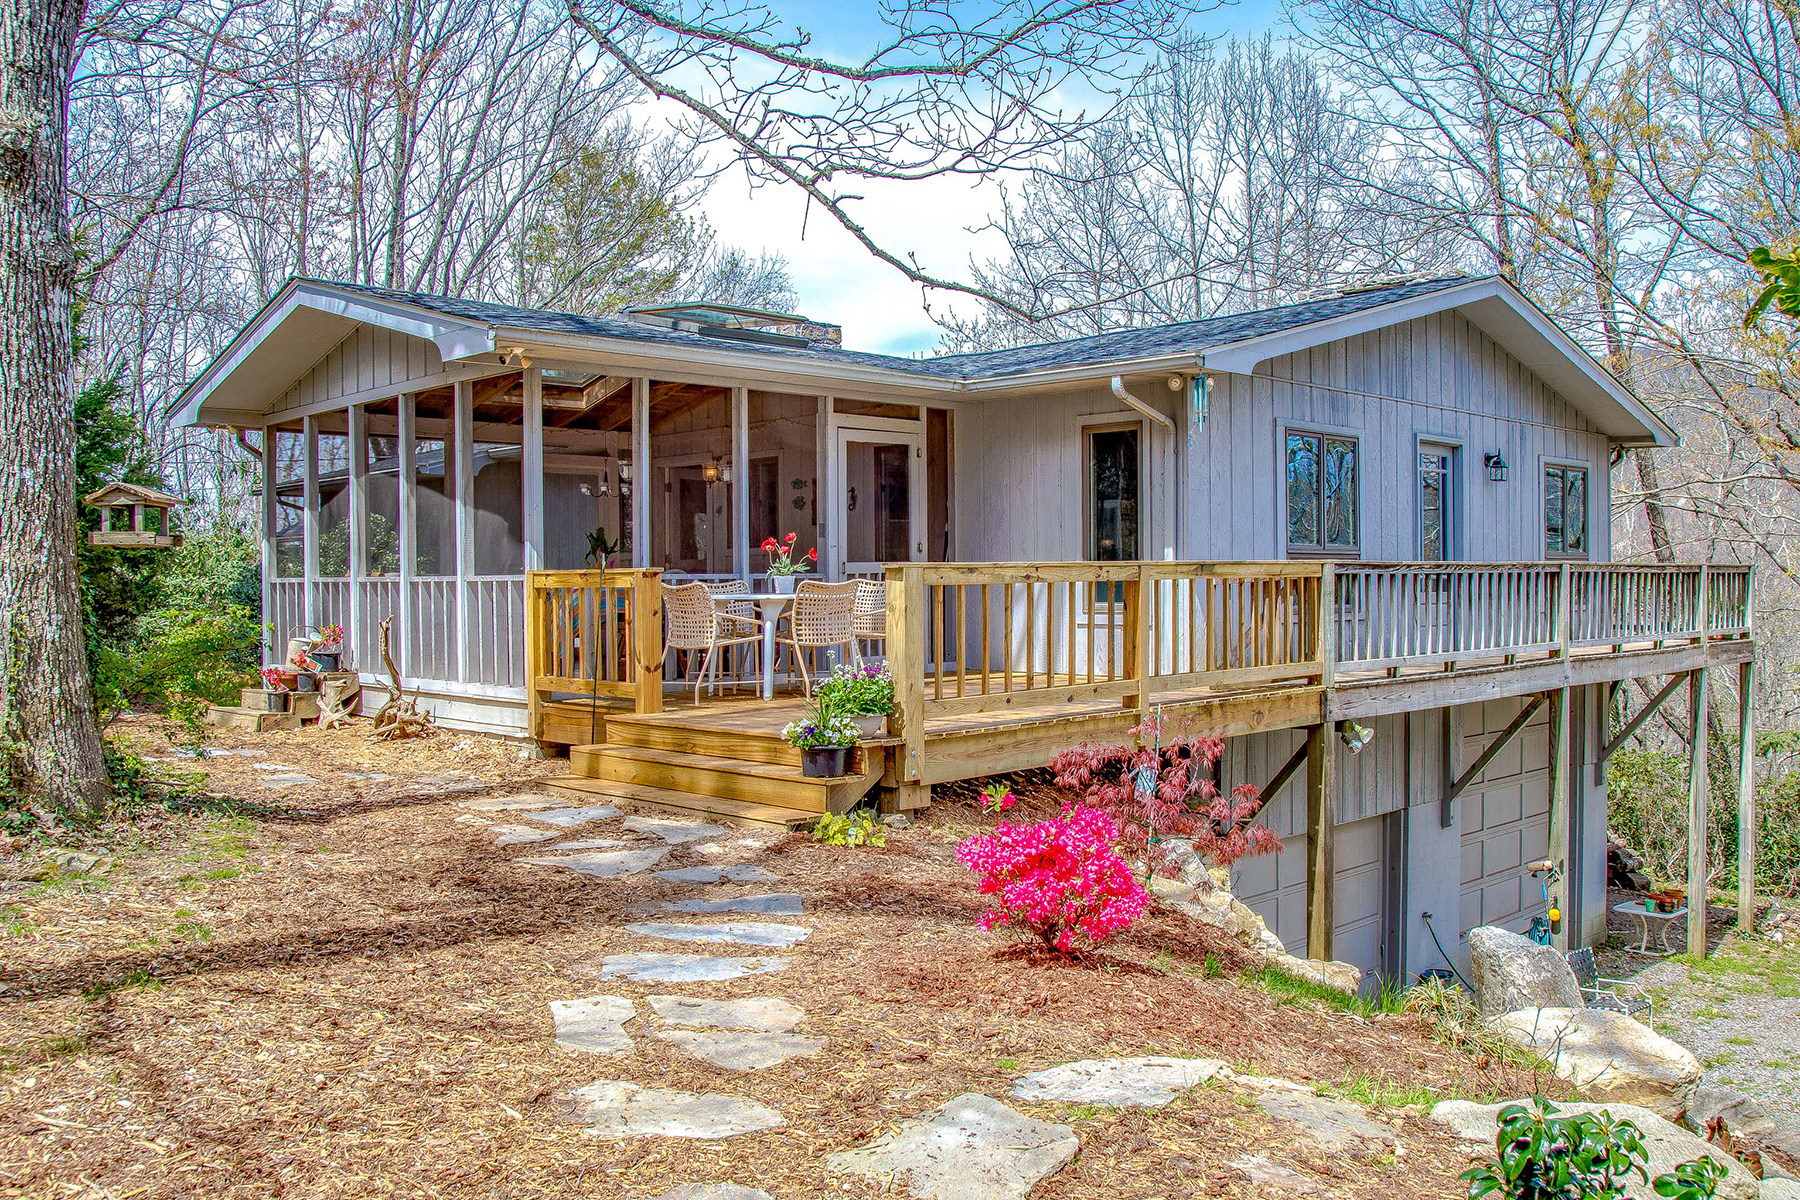 Single Family Homes for Active at FAIRVIEW 11 Marilyn Charles Rdge Fairview, North Carolina 28730 United States